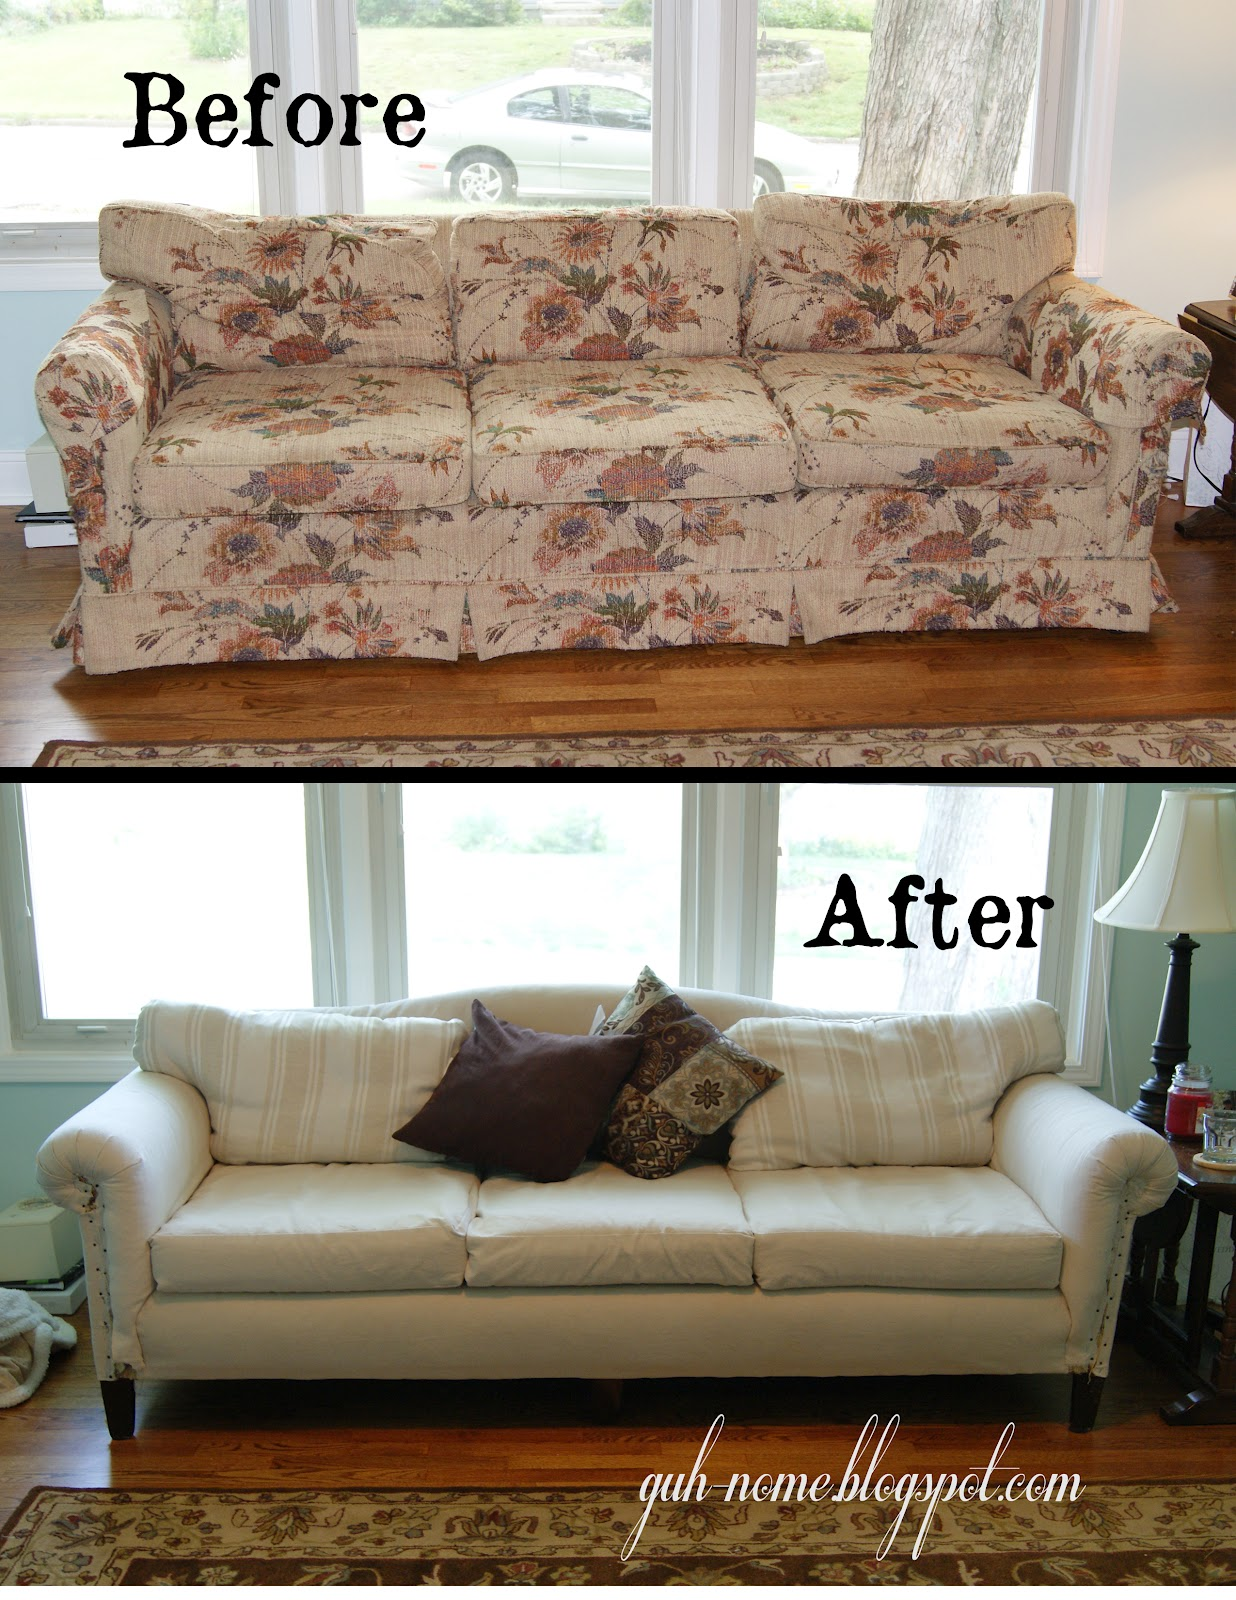 How Much Fabric Do I Need To Recover A Sofa Gray Modular Sectional Music Corsets And Star Wars New Life For My Couch